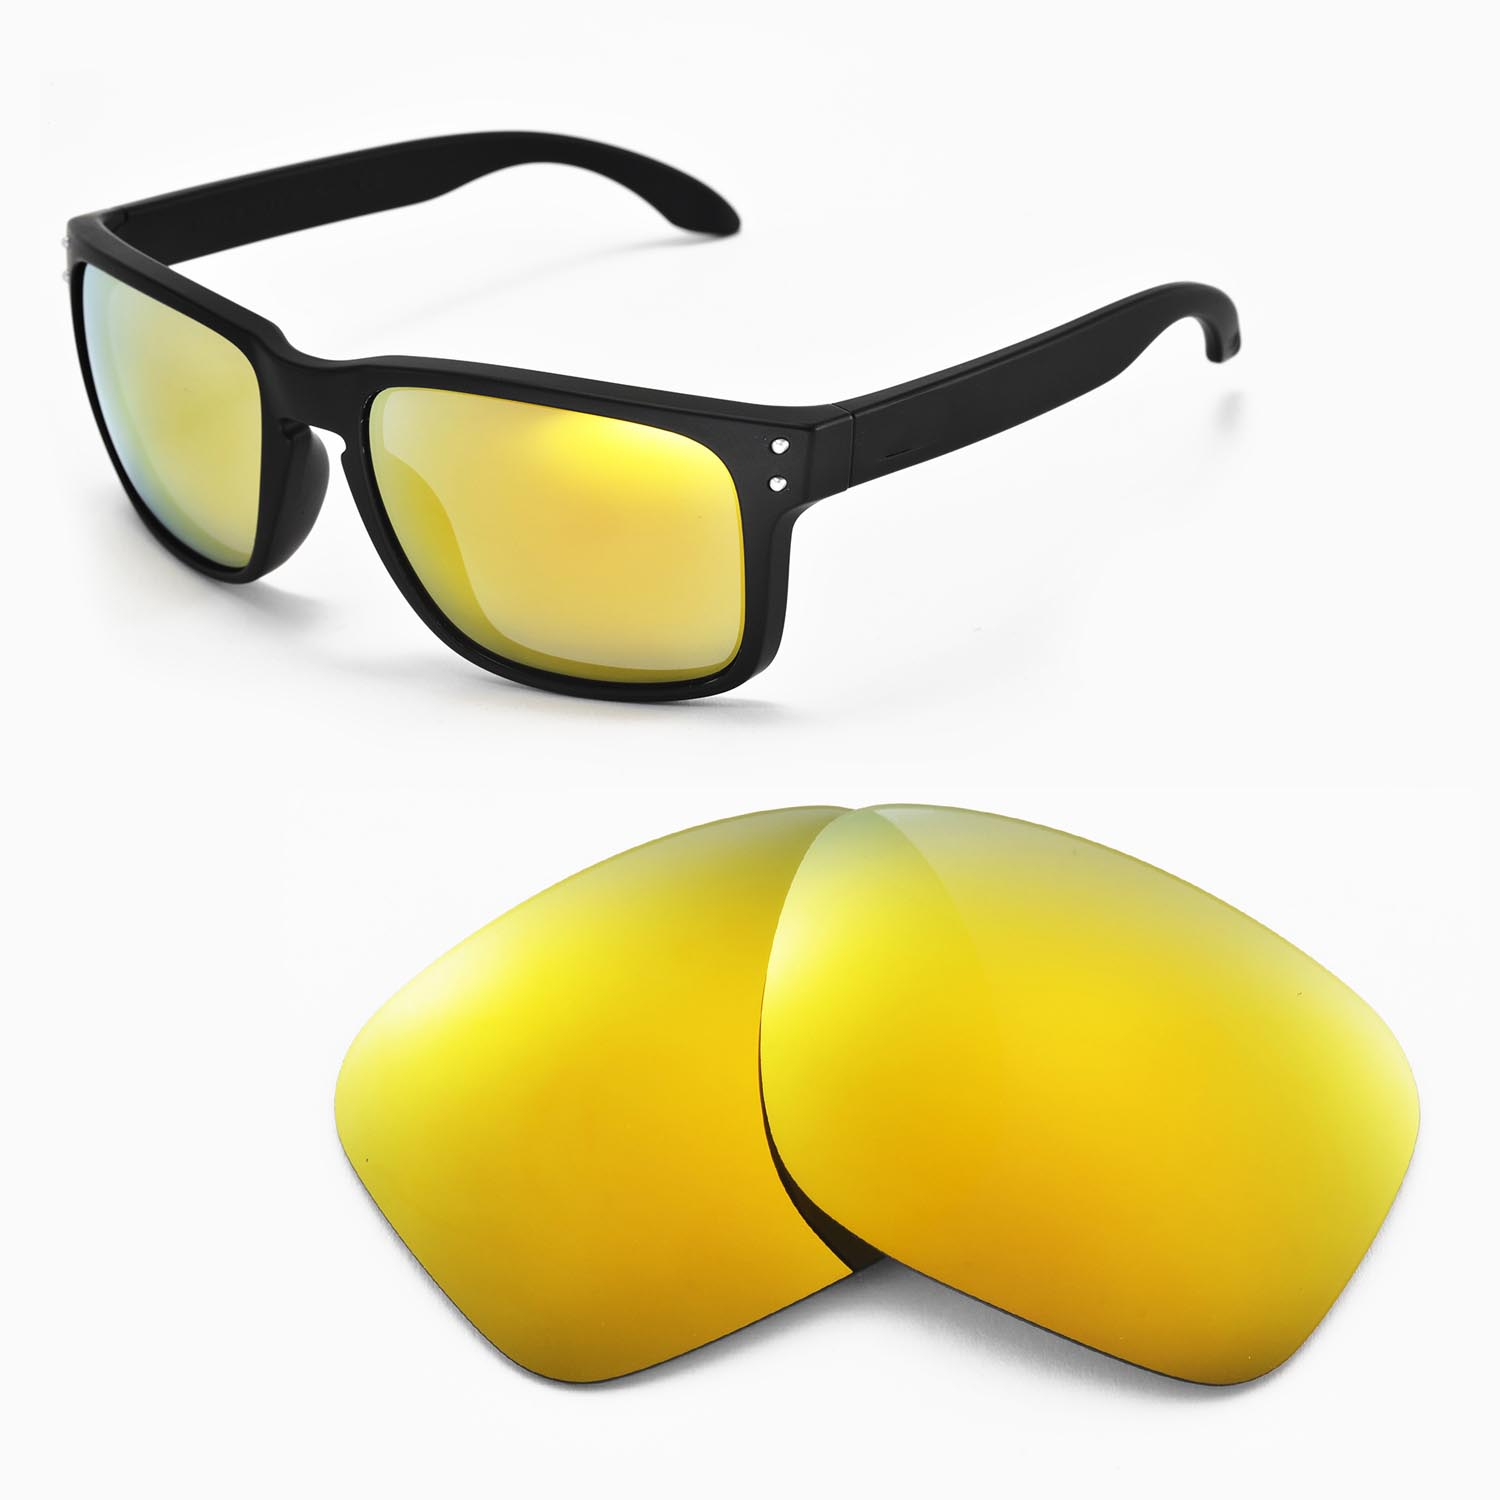 Replacement Sunglass Lenses  how to replacement lenses for your sunglasses ebay